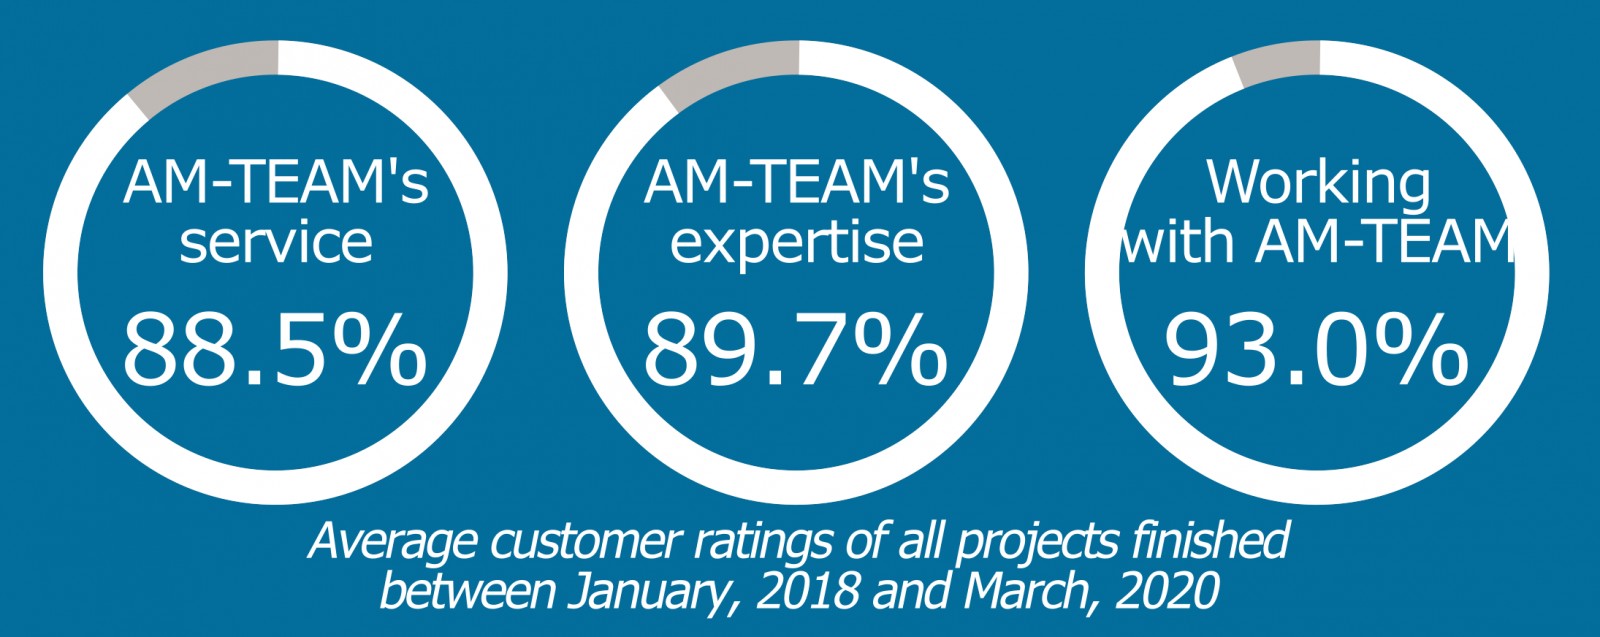 The AM-TEAM customer satisfaction scores